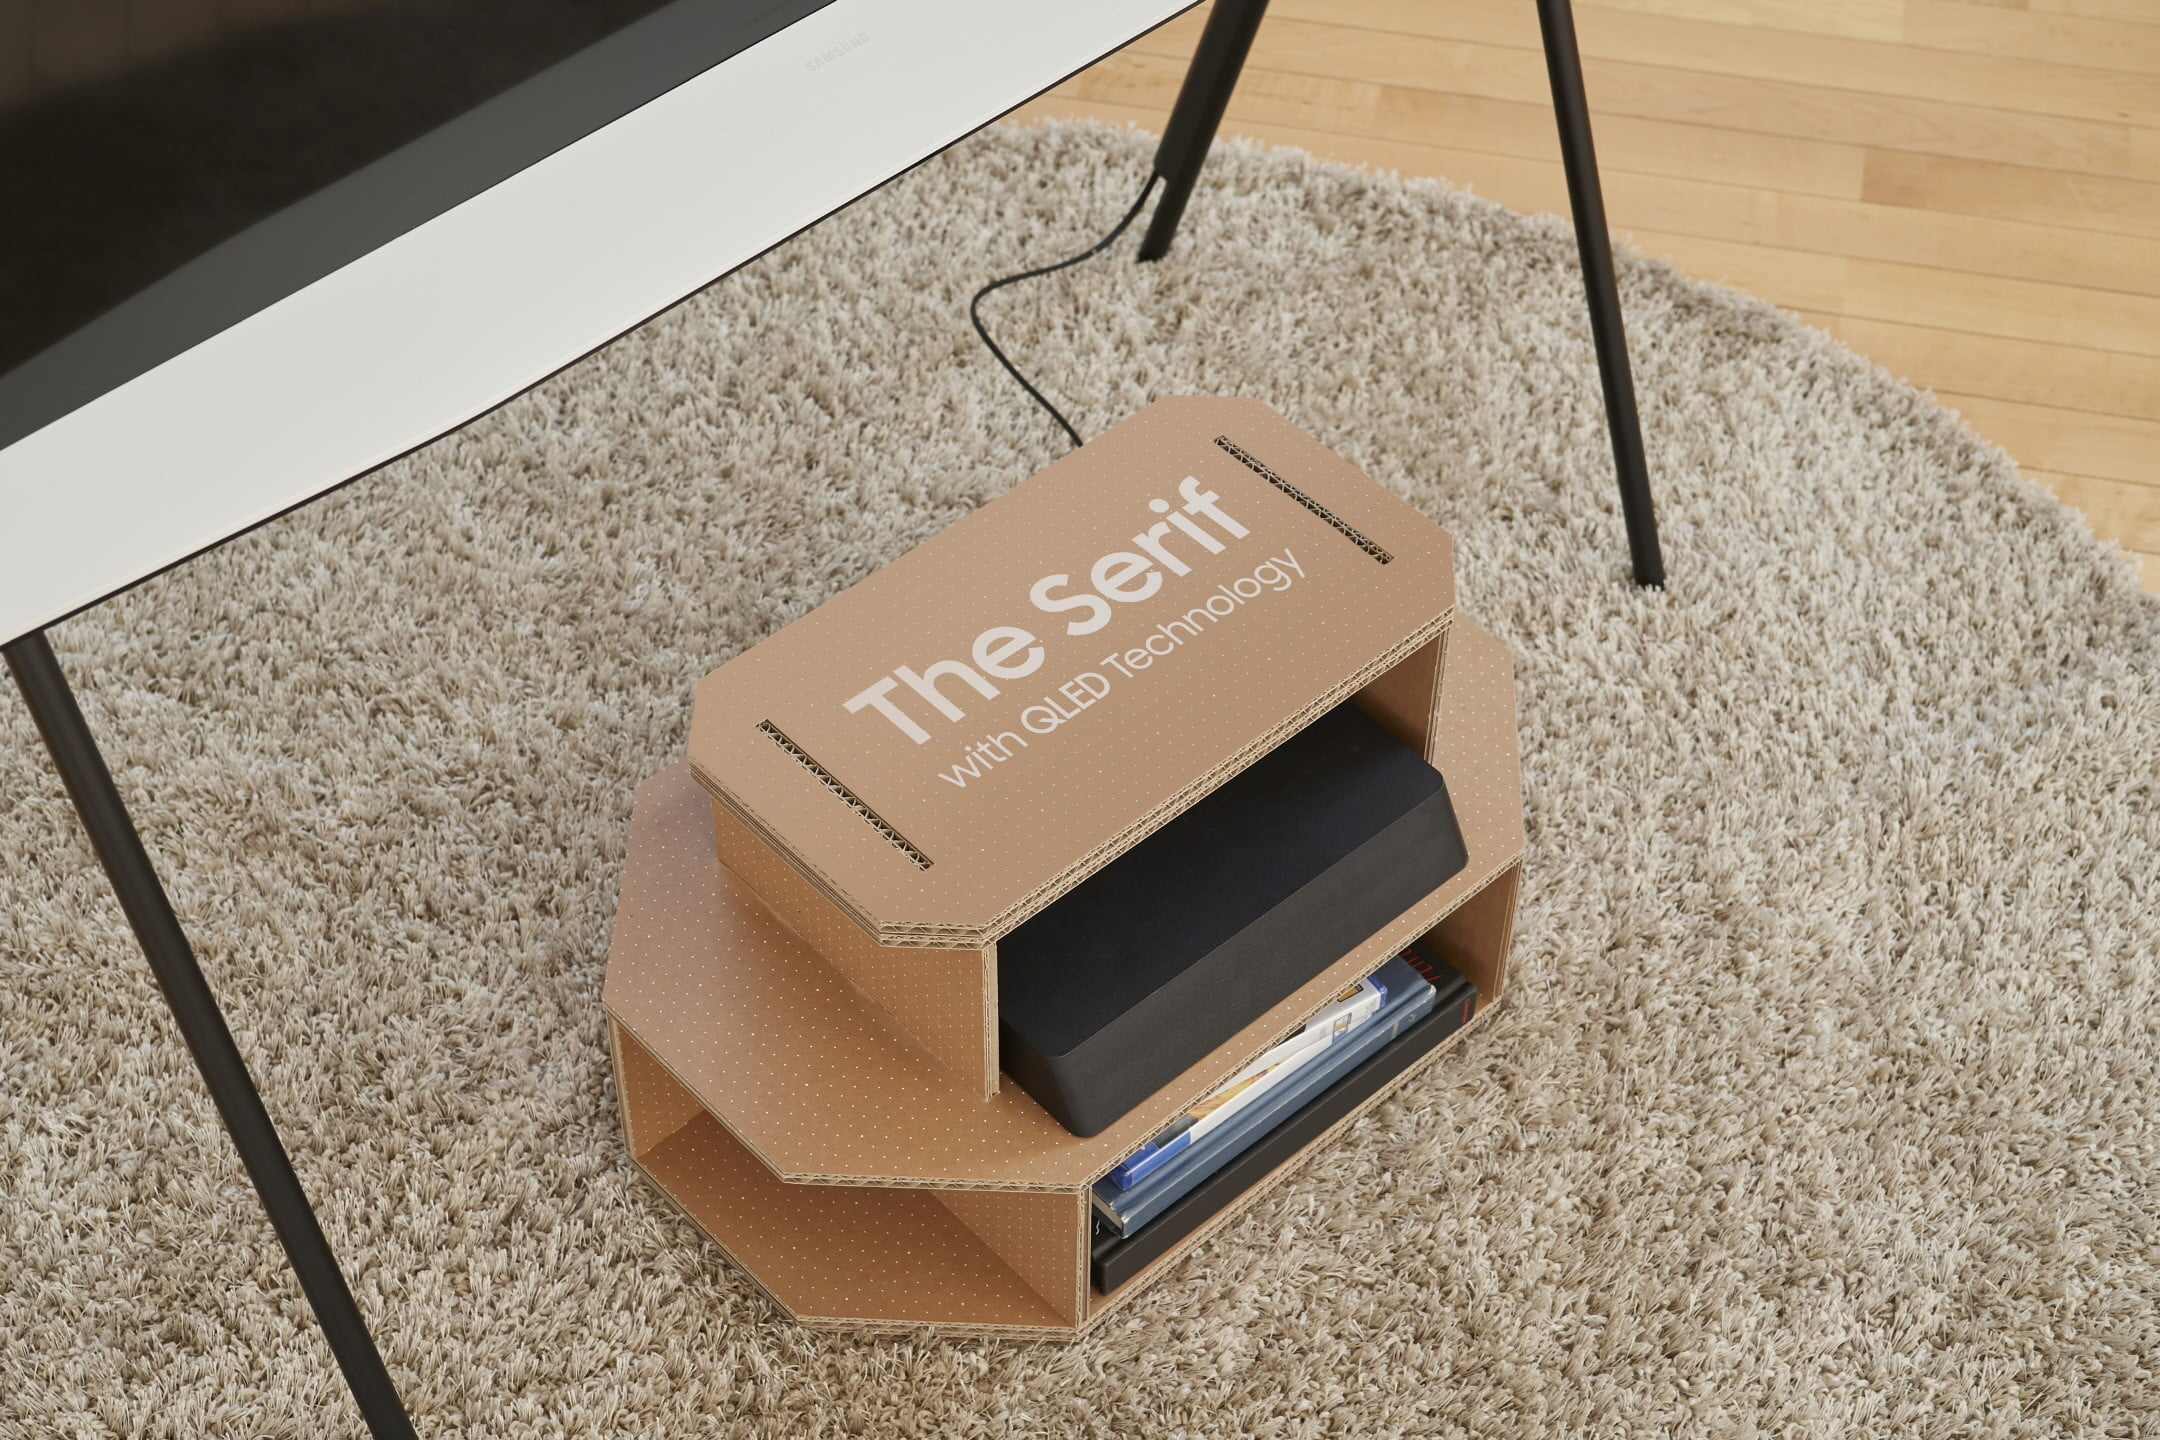 samsung cajas televisores gato eco packaging for lifestyle tv lineup 3